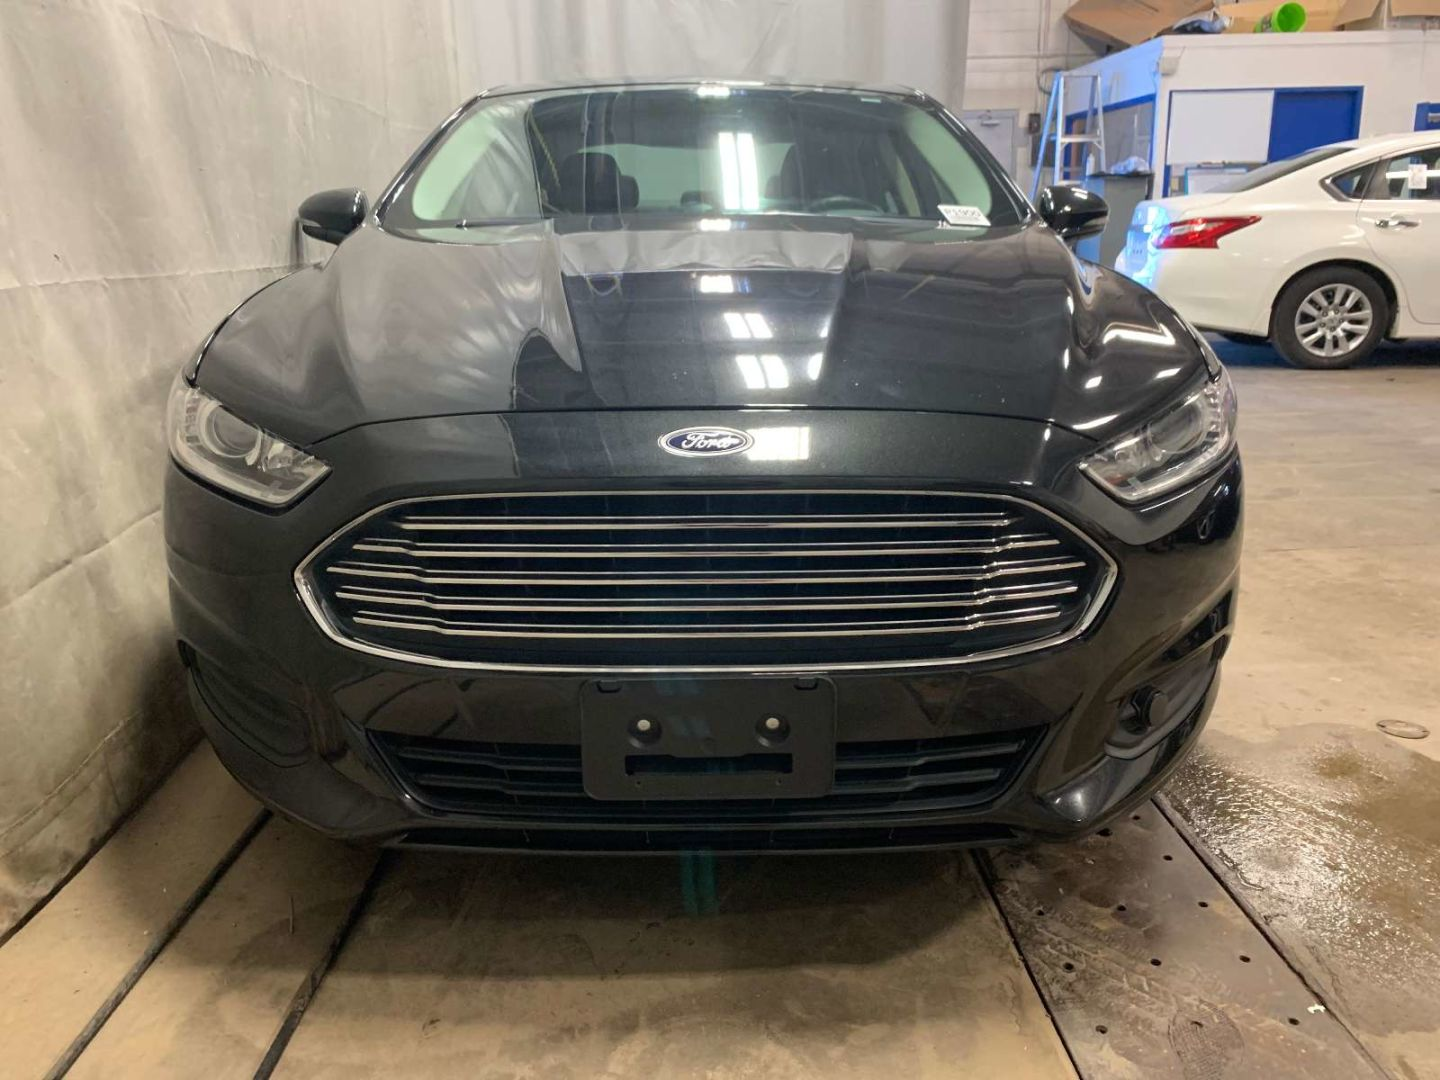 2014 Ford Fusion SE for sale in Red Deer, Alberta